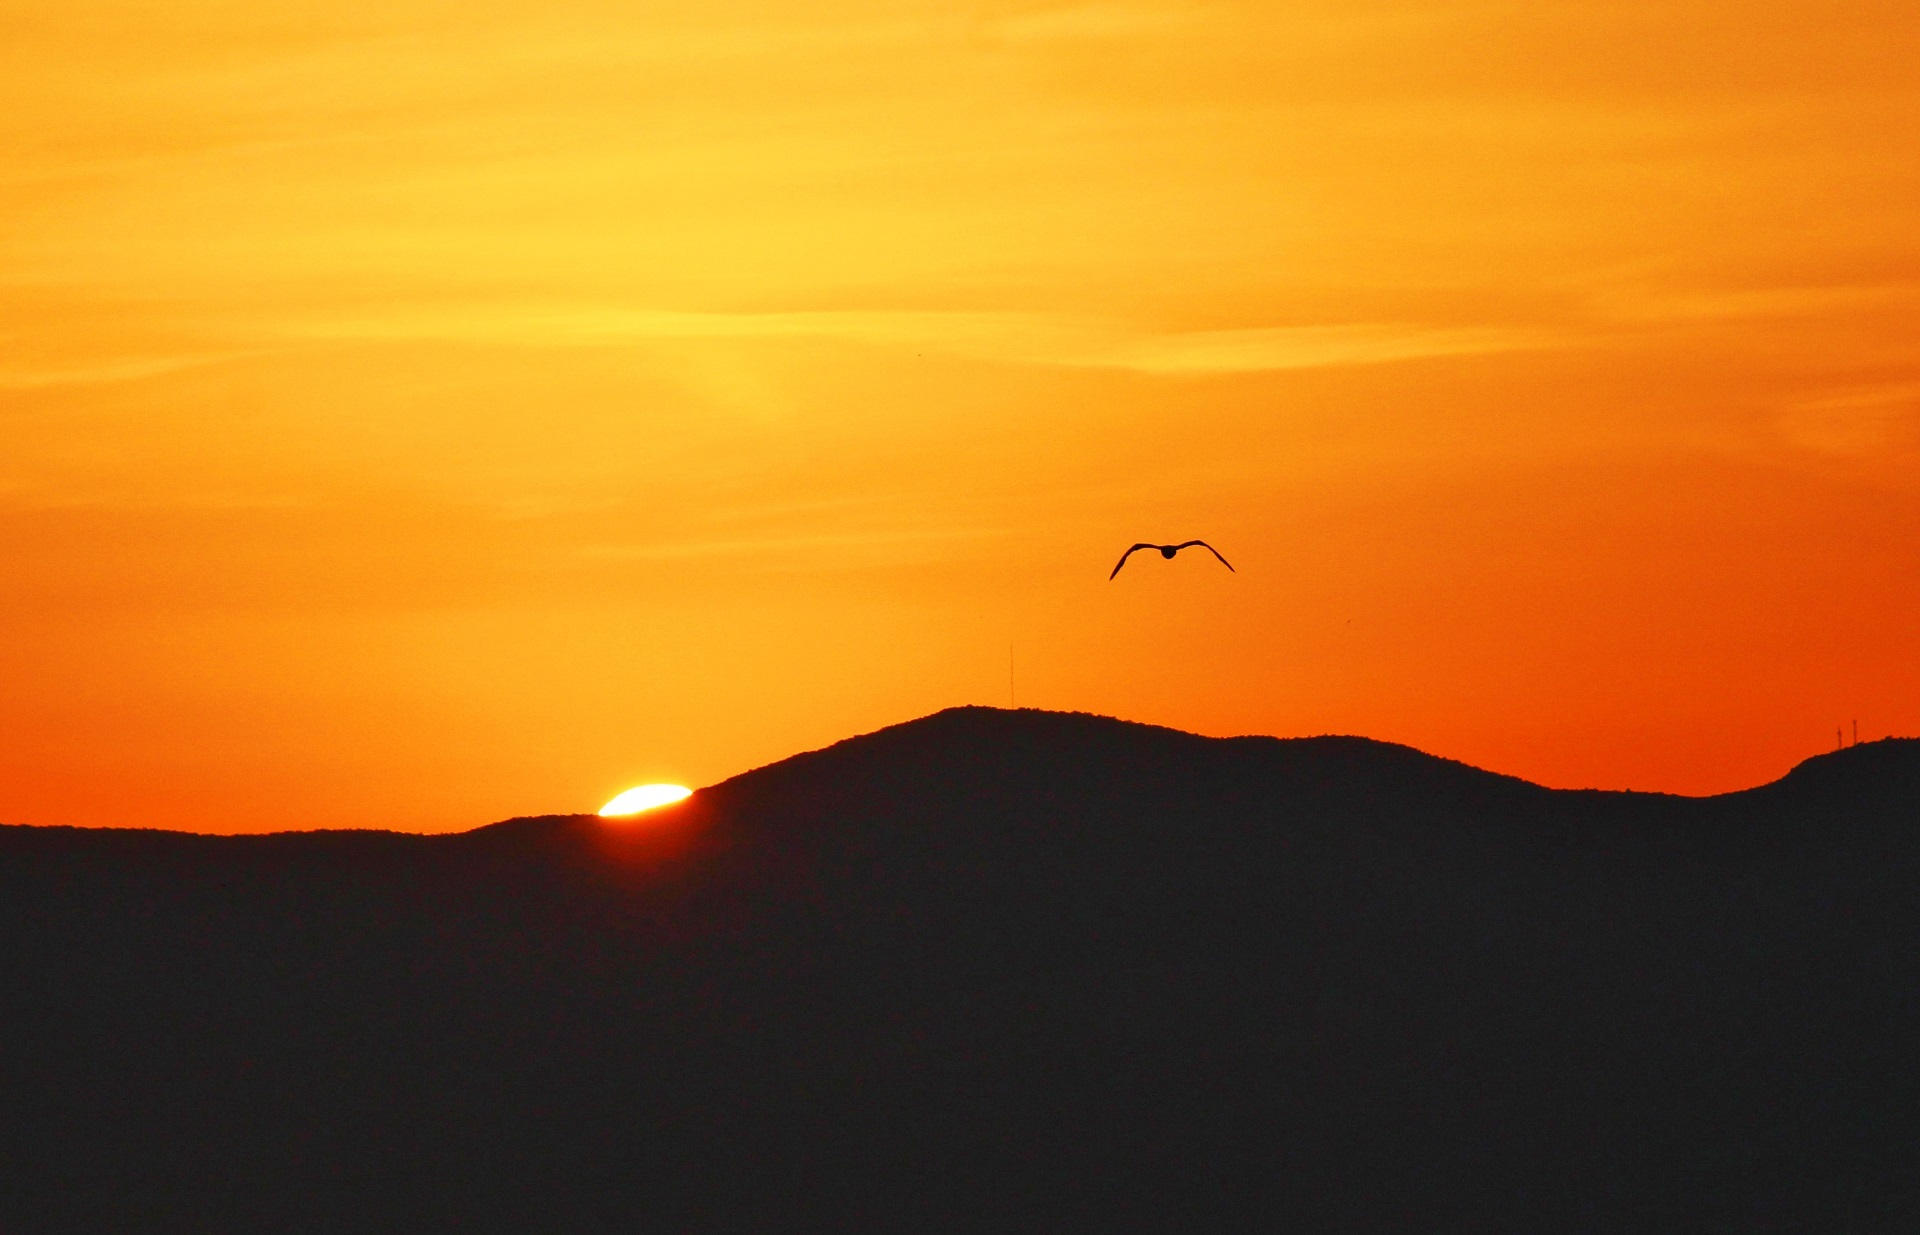 Sunrises and sunsets of our planet example photo